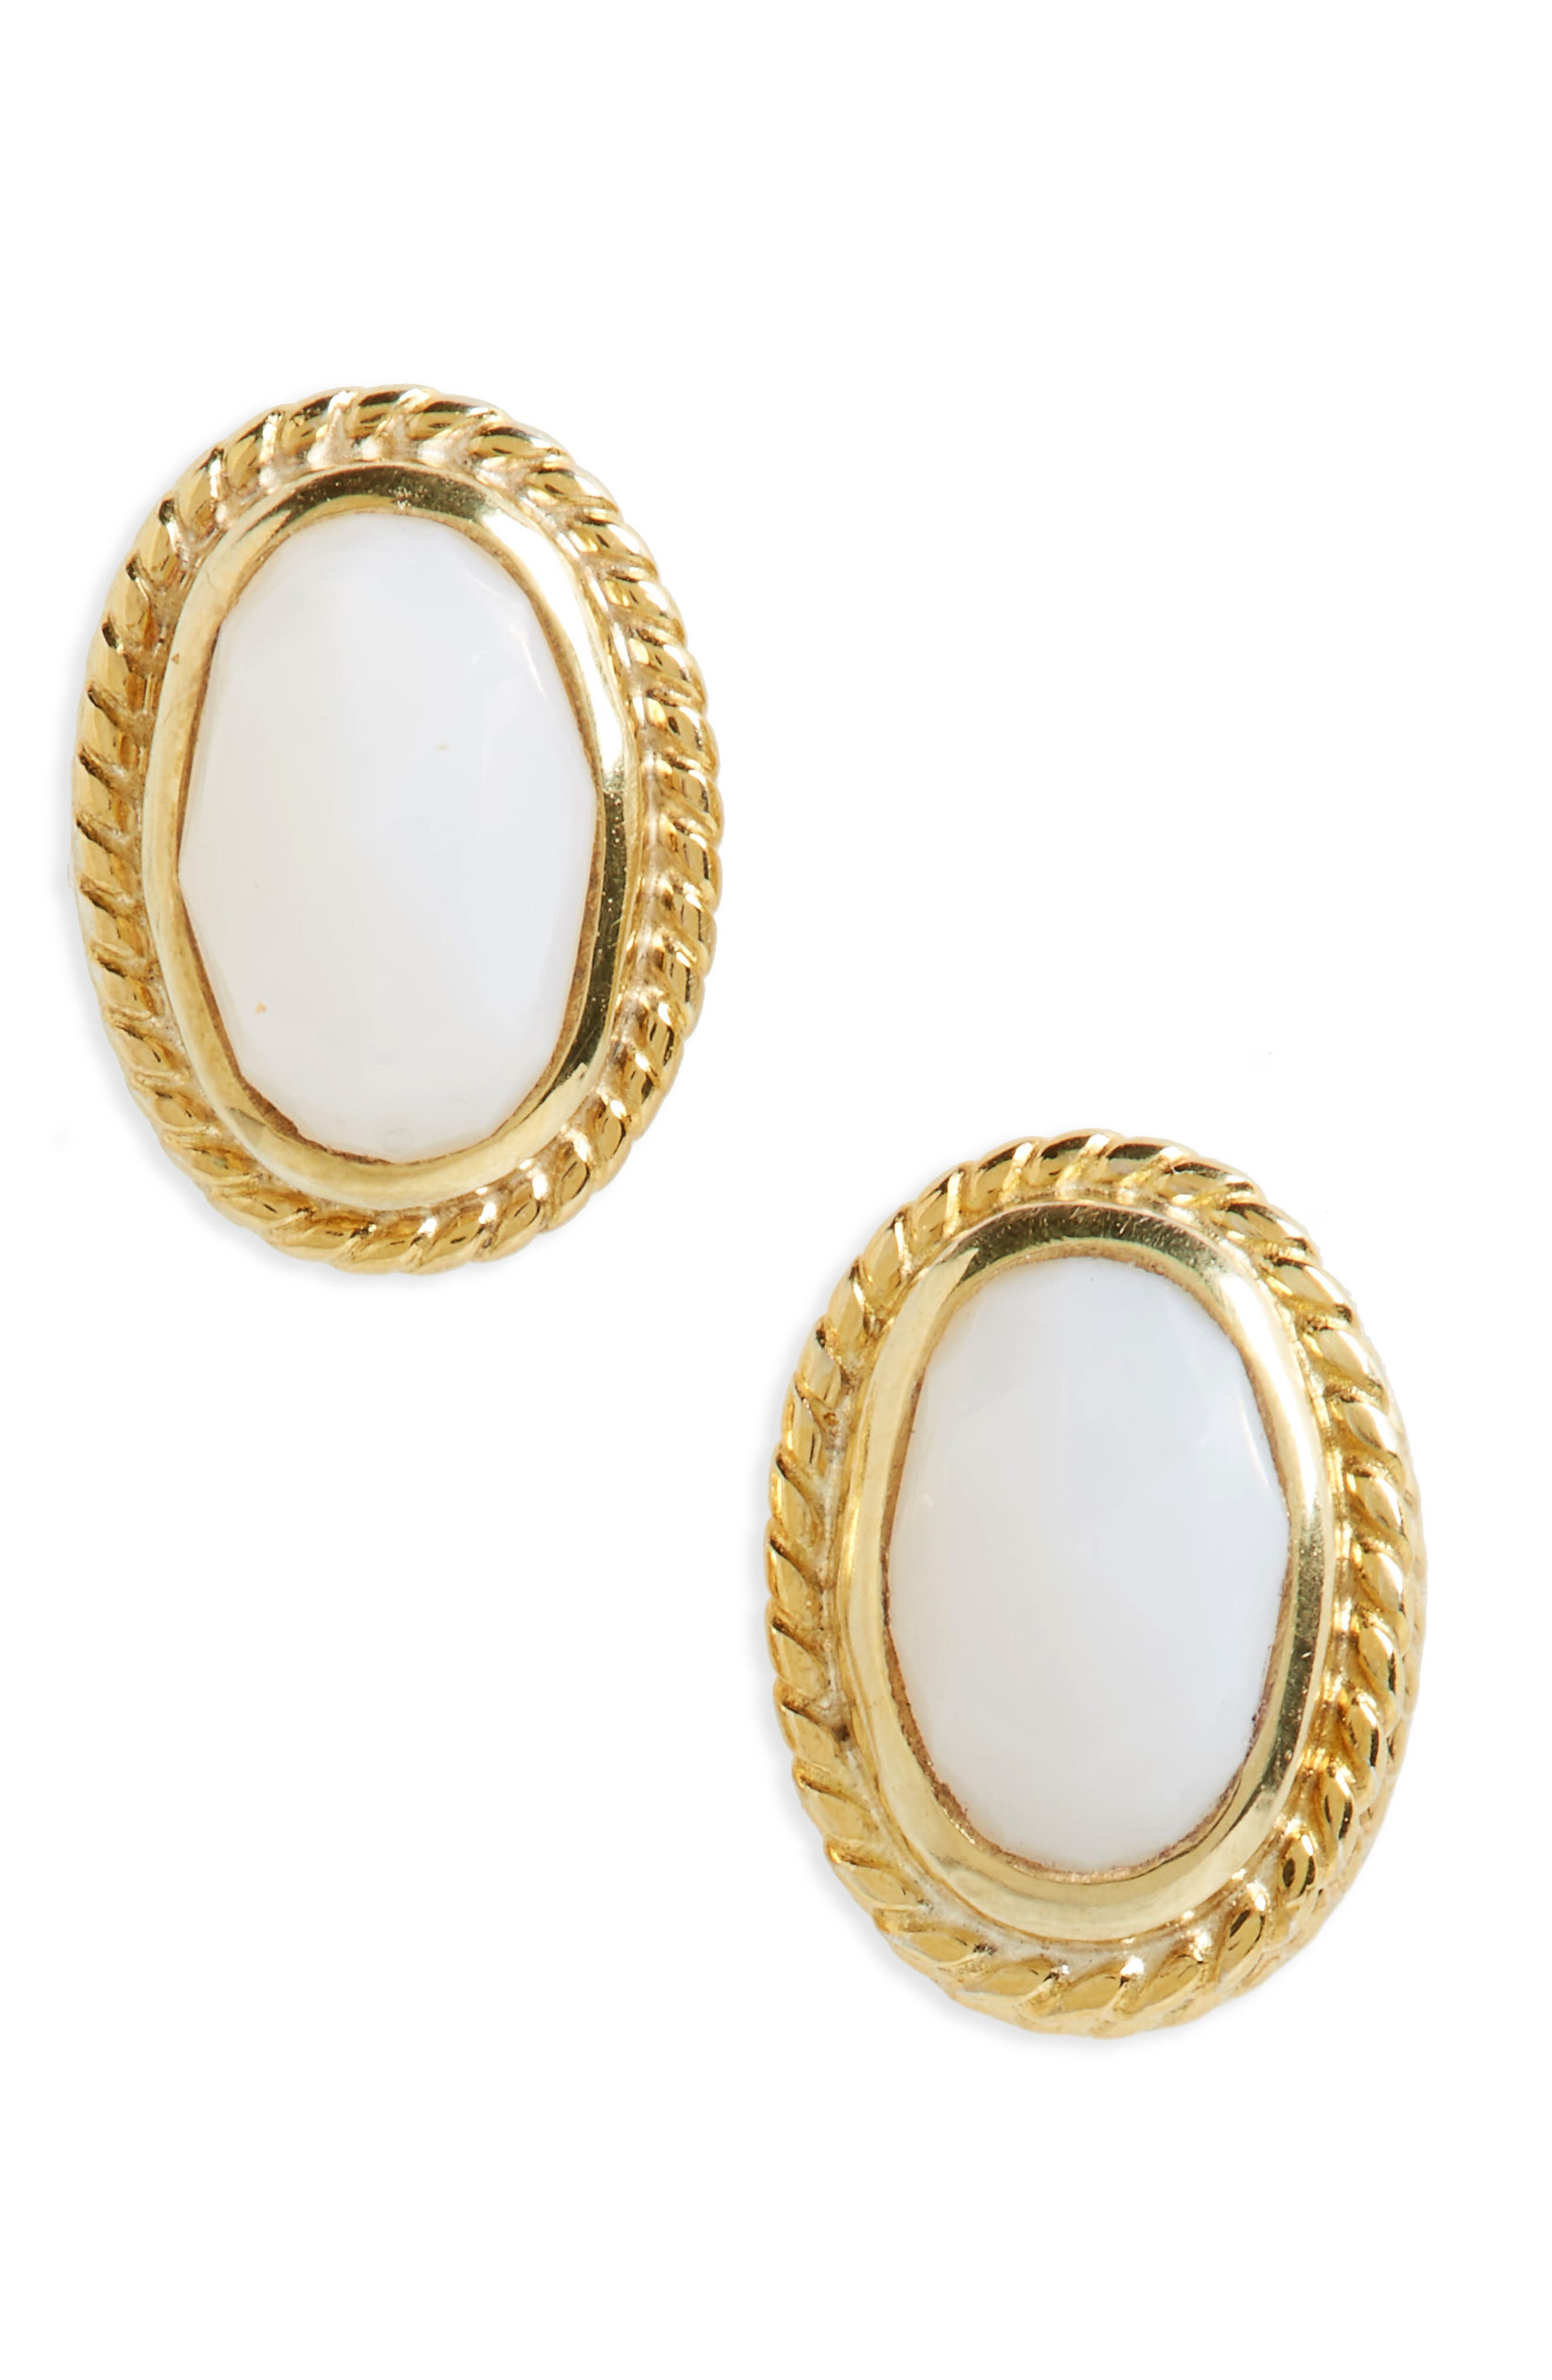 Main Image - Anna Beck White Opal Stud Earrings